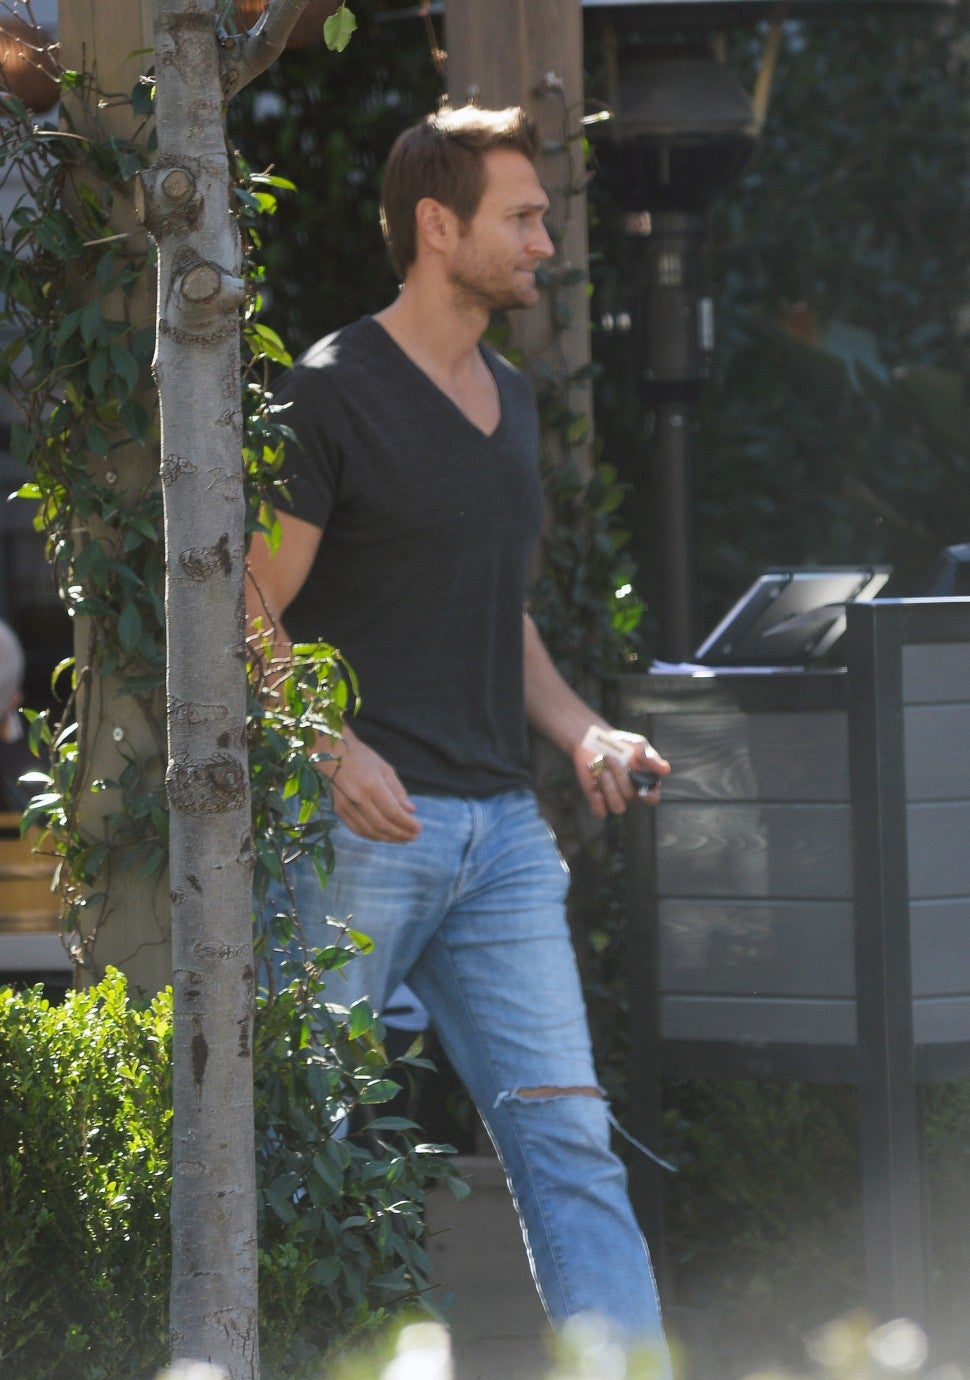 Jennifer Garner and John Miller are spotted leaving separately after dining at Blue Ribbon Sushi in Los Angeles. The 46 year old actress was dressed in a grey sweater and jeans, while Miller sported a v-neck shirt with jeans.